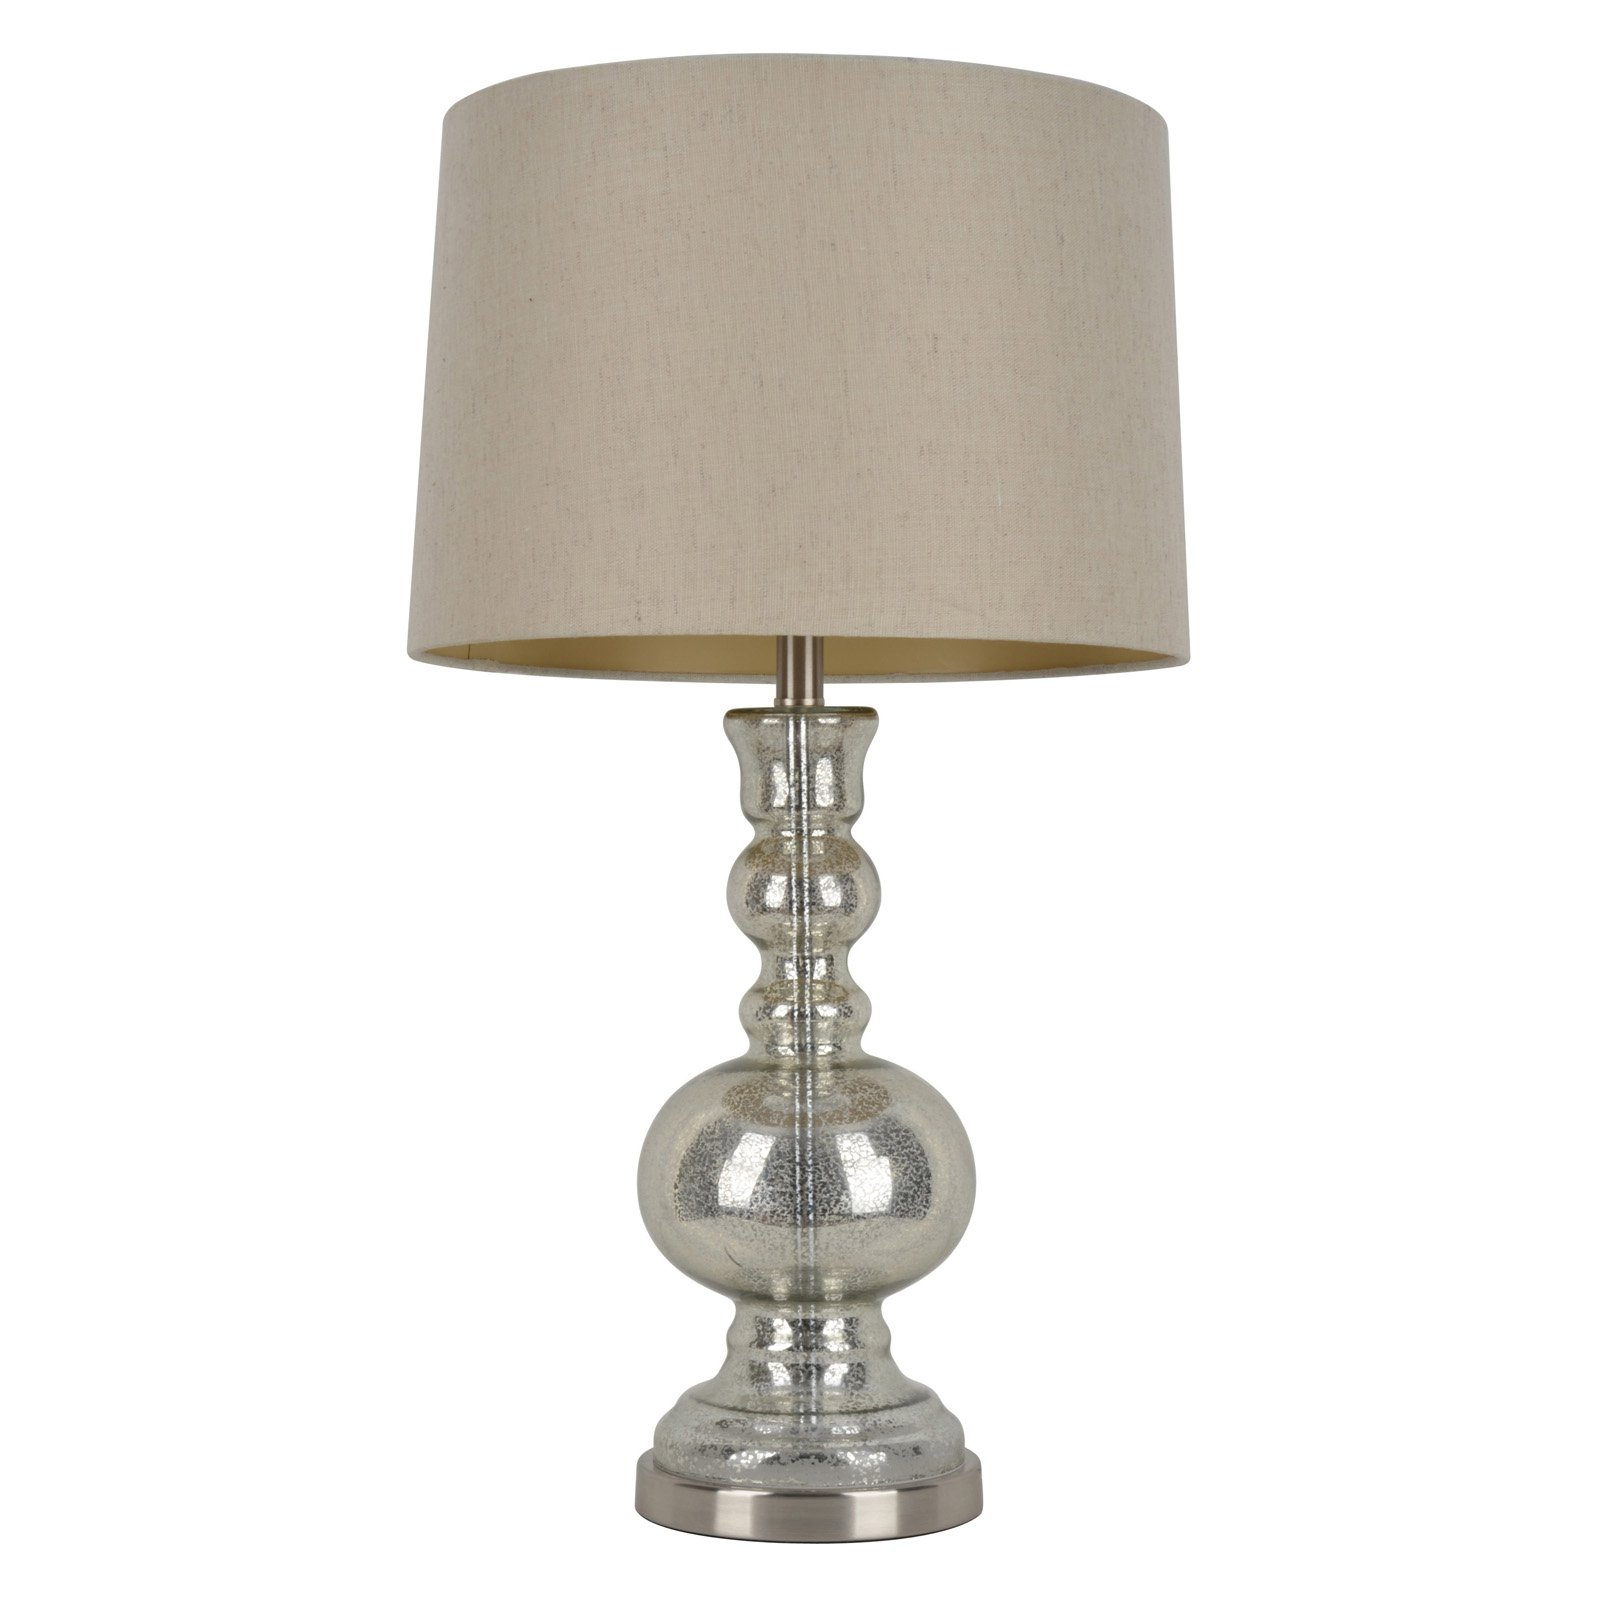 Decor Therapy Silver Mercury Glass Table Lamp by Jimco Lamp & Manufacturing